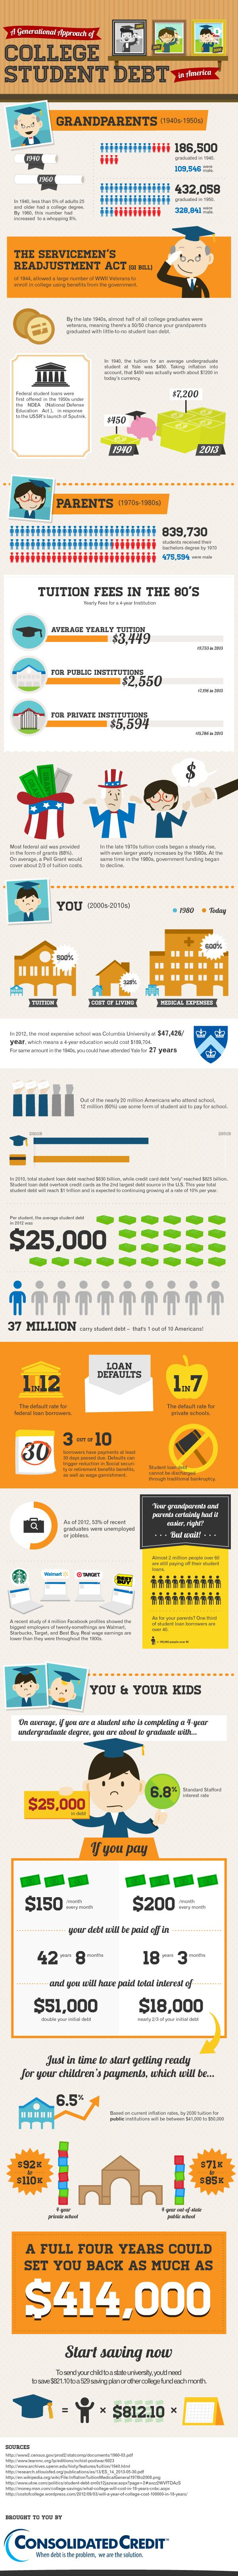 A Generational Approach to Student Loans